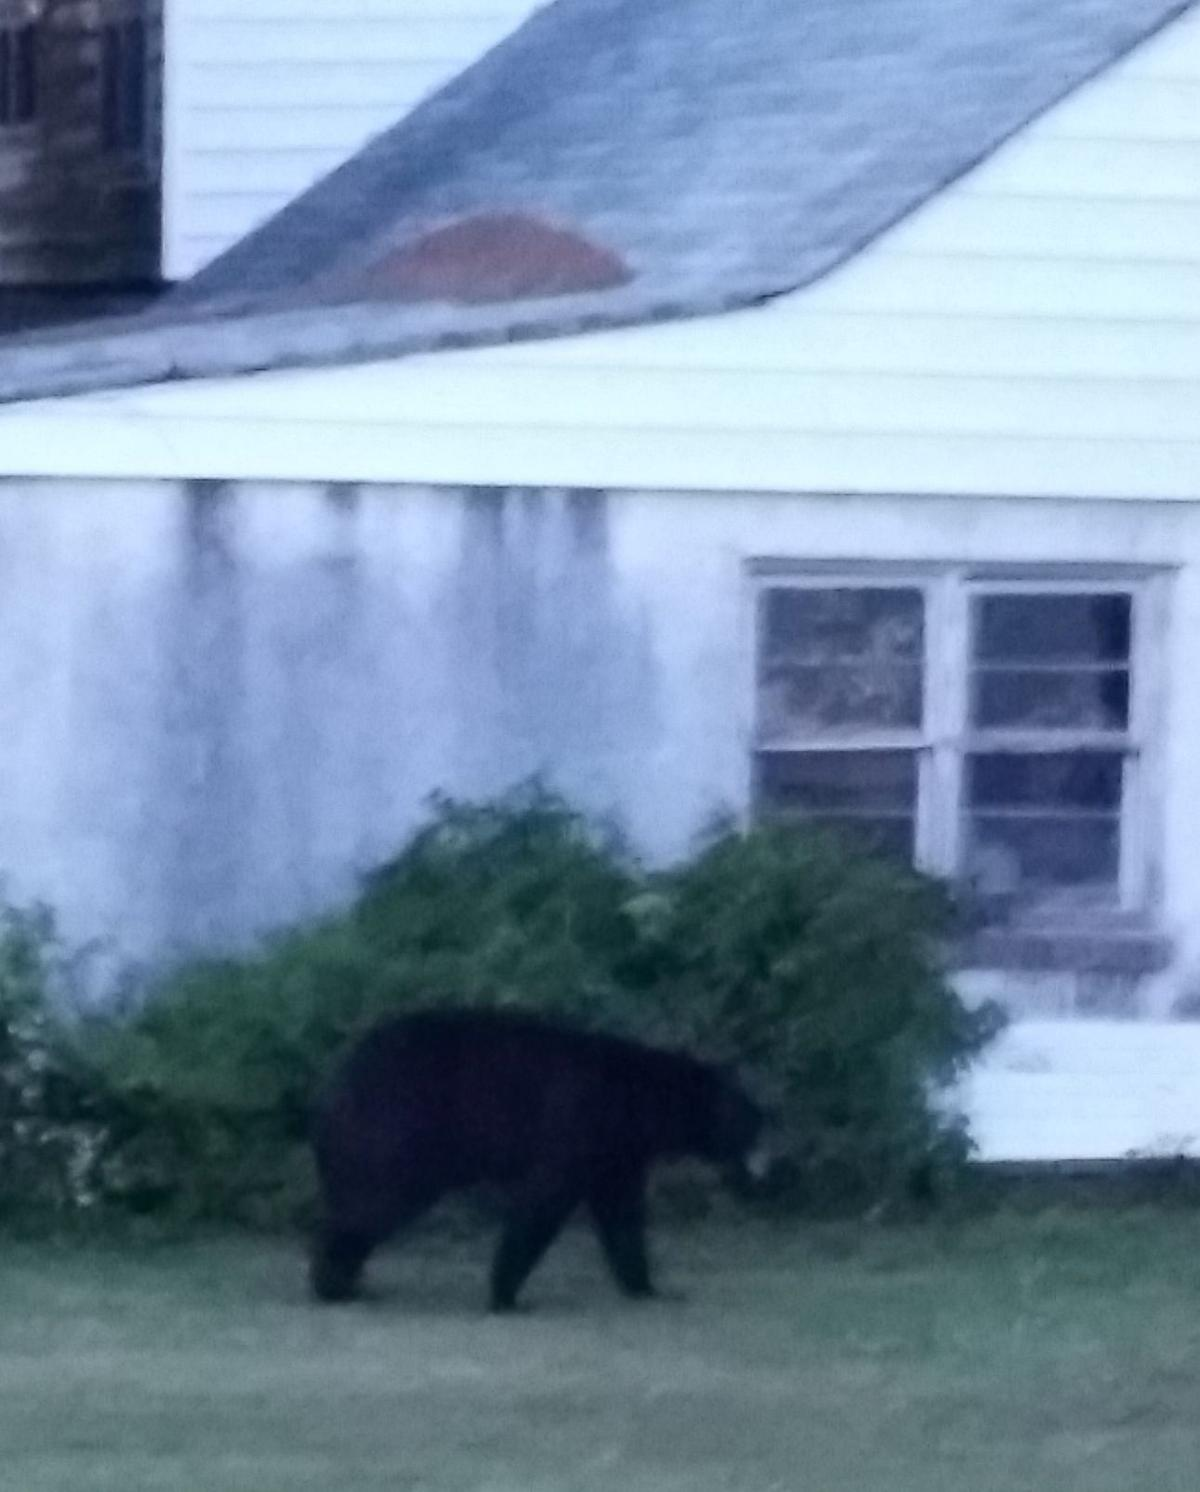 More bear sightings